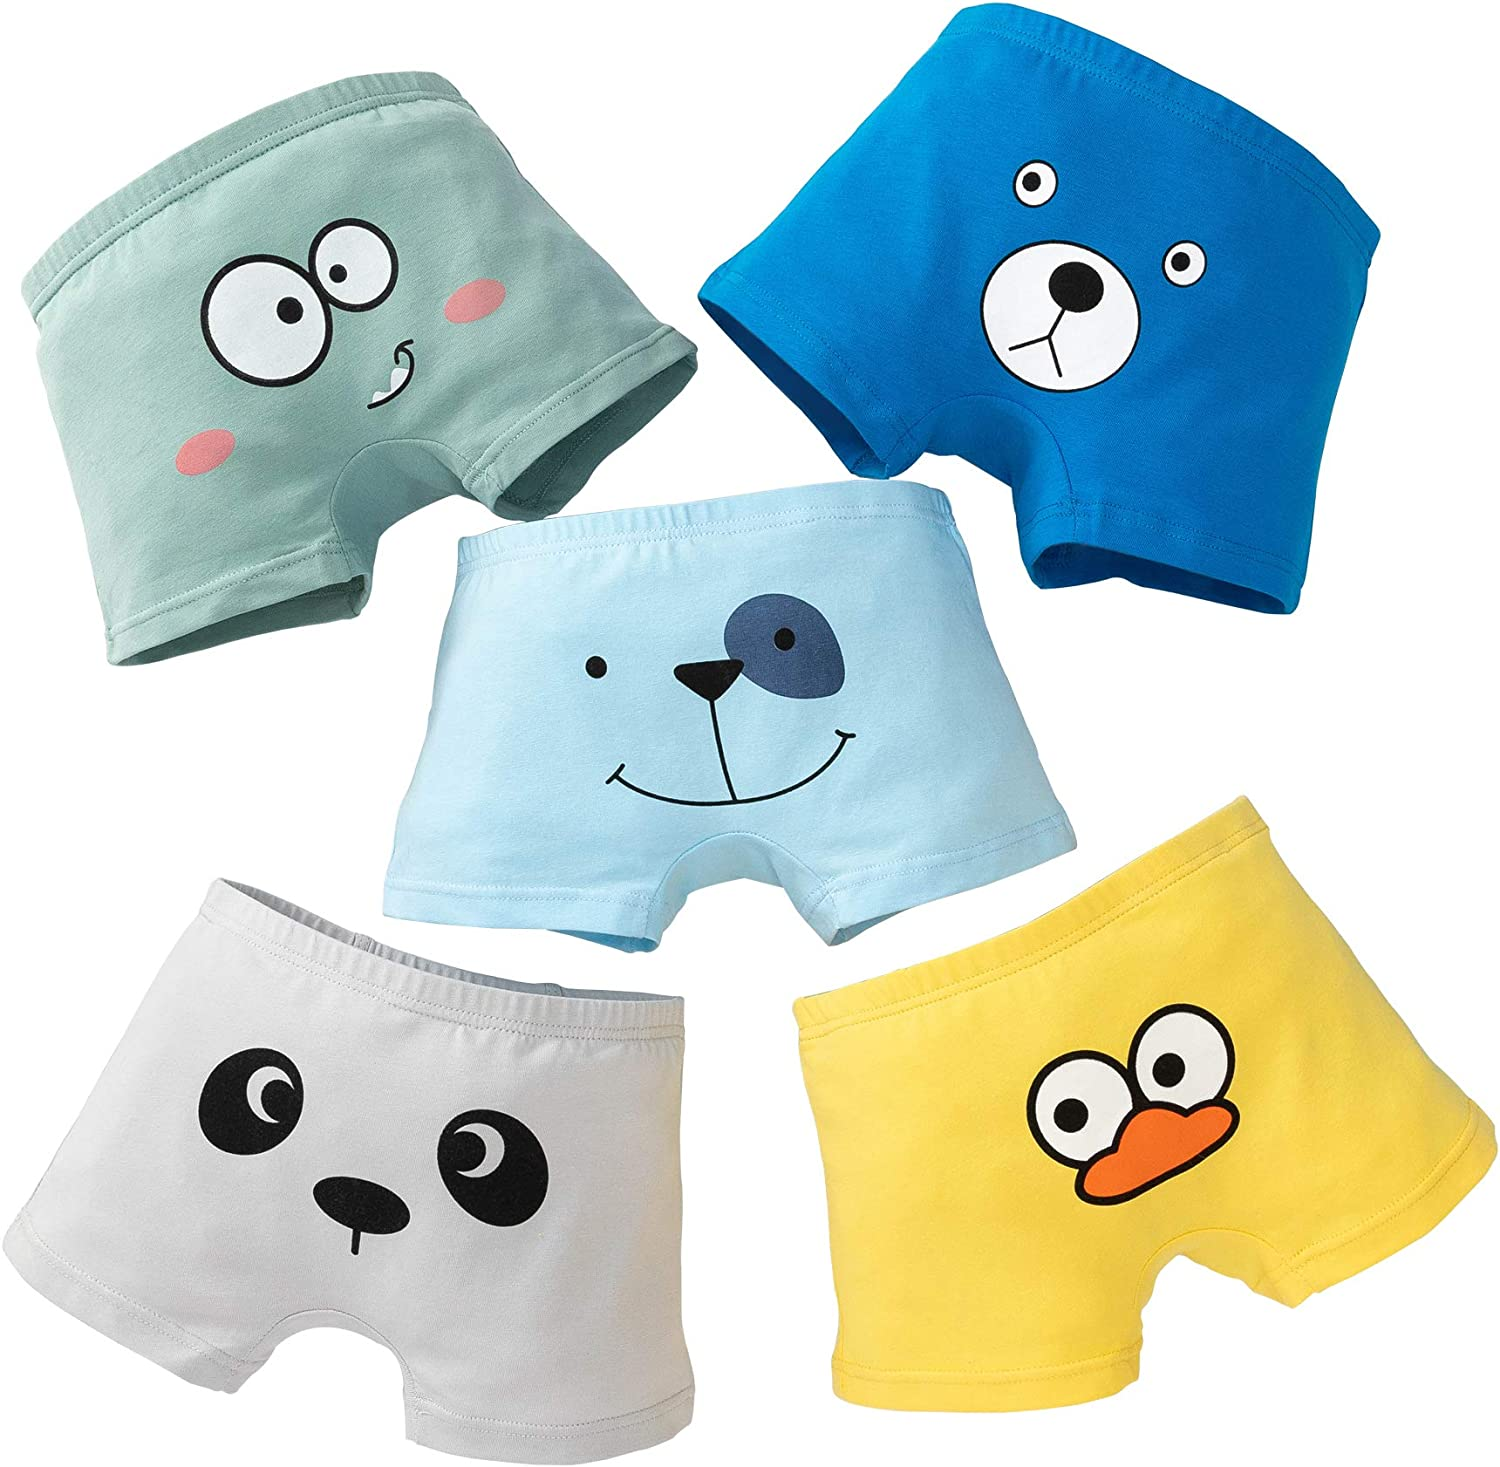 Core Pretty Boys Underwear Kids Cotton Boxer Briefs Animalface Training Boy Shorts for Toddler Size 3-12 Years (Pack of 5)